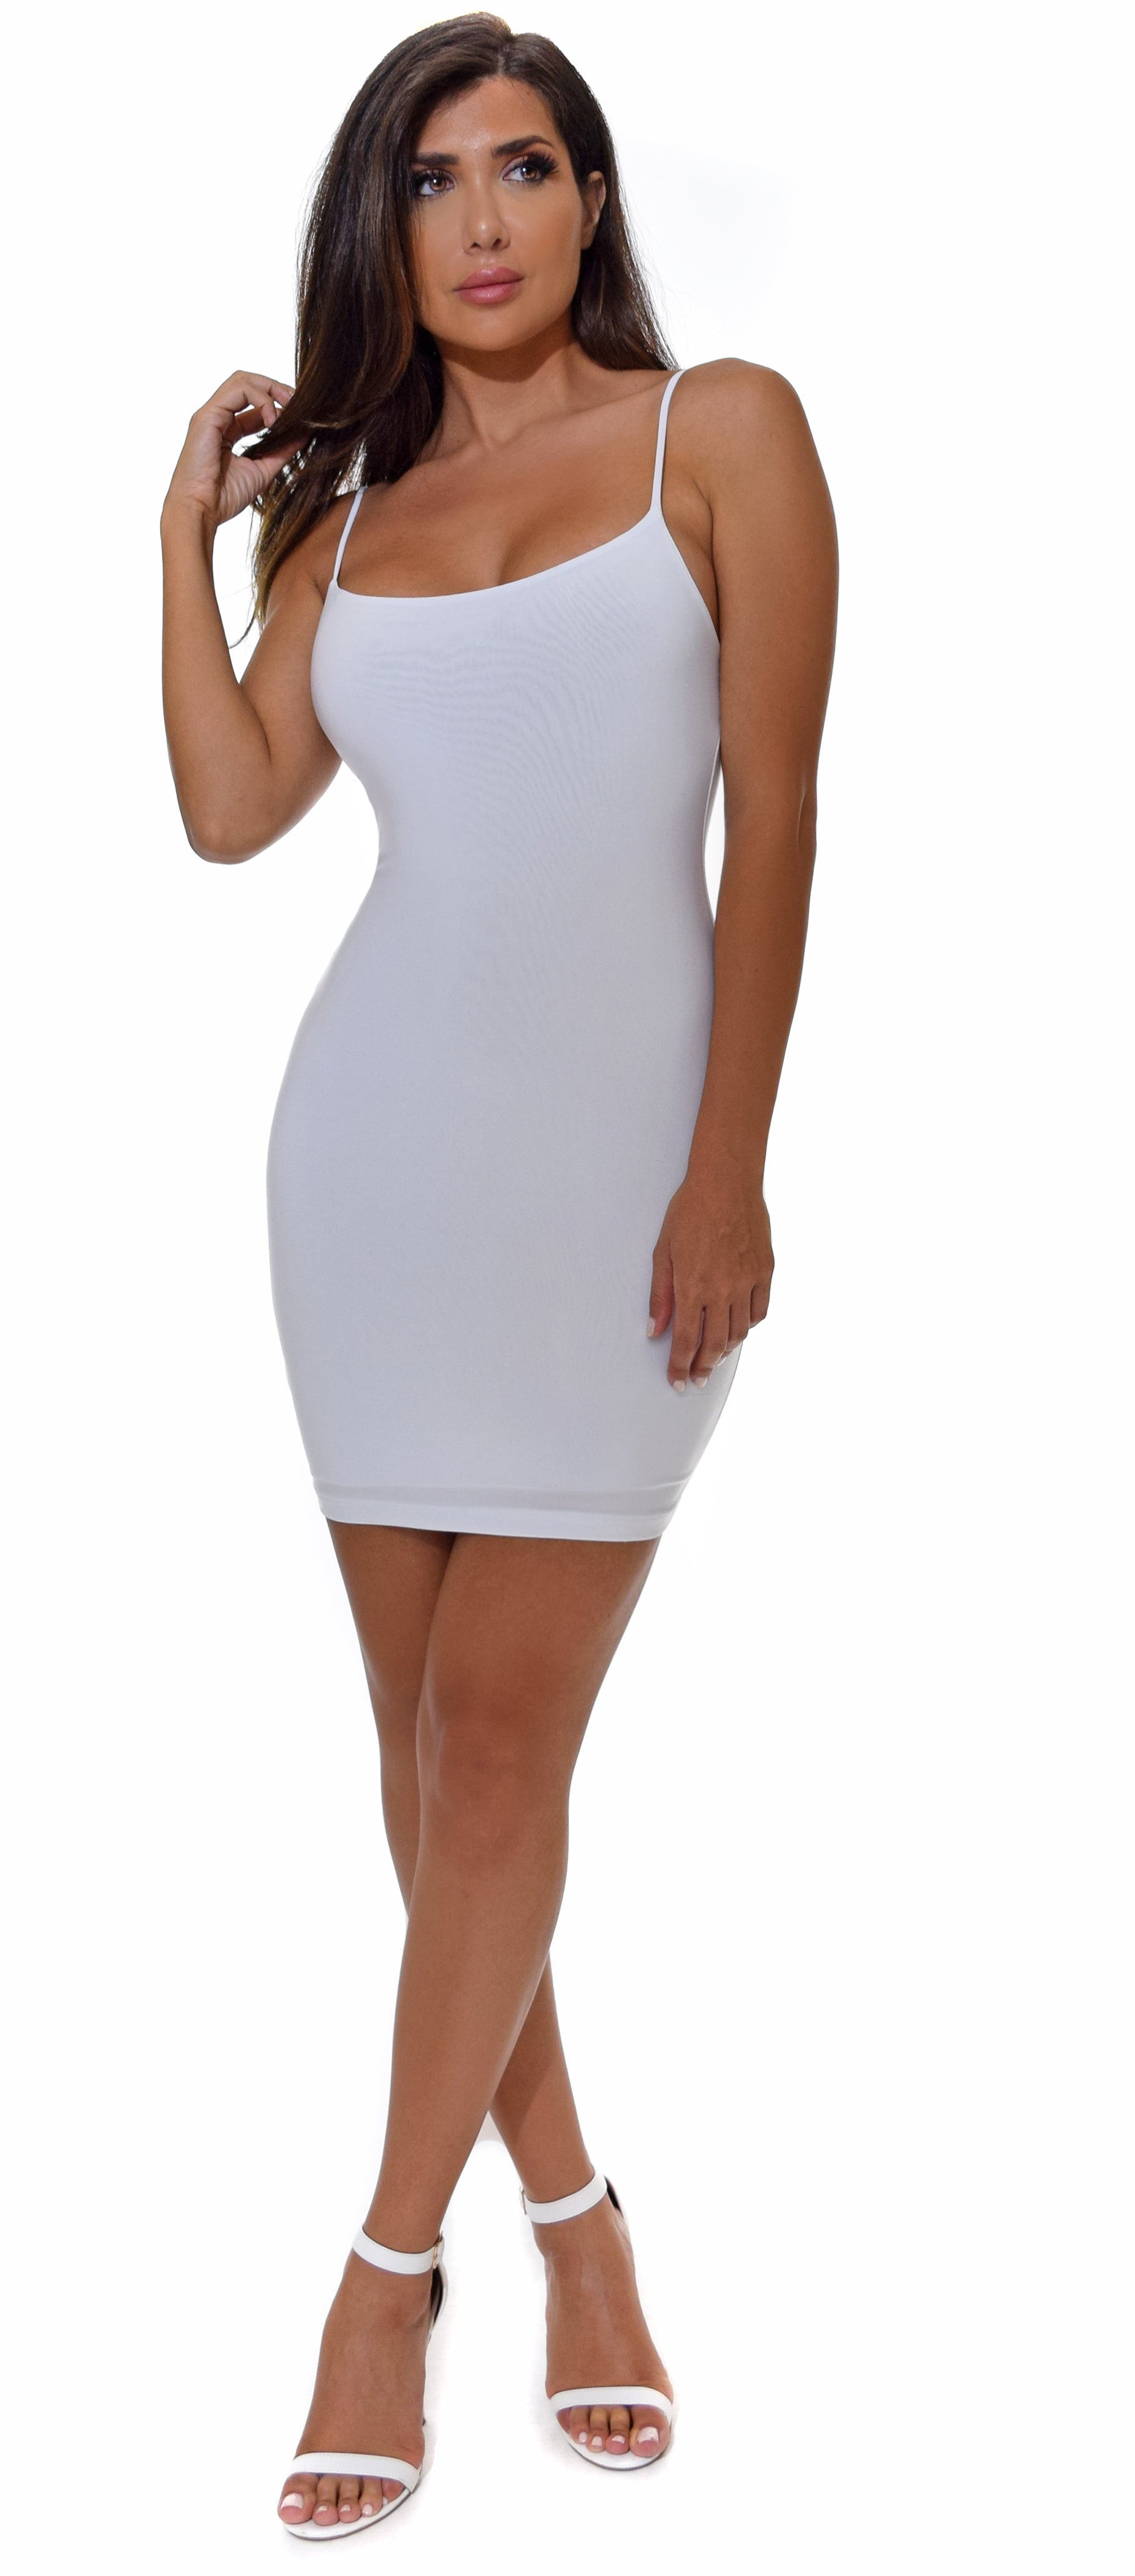 July White Spaghetti Strap Mini Dress